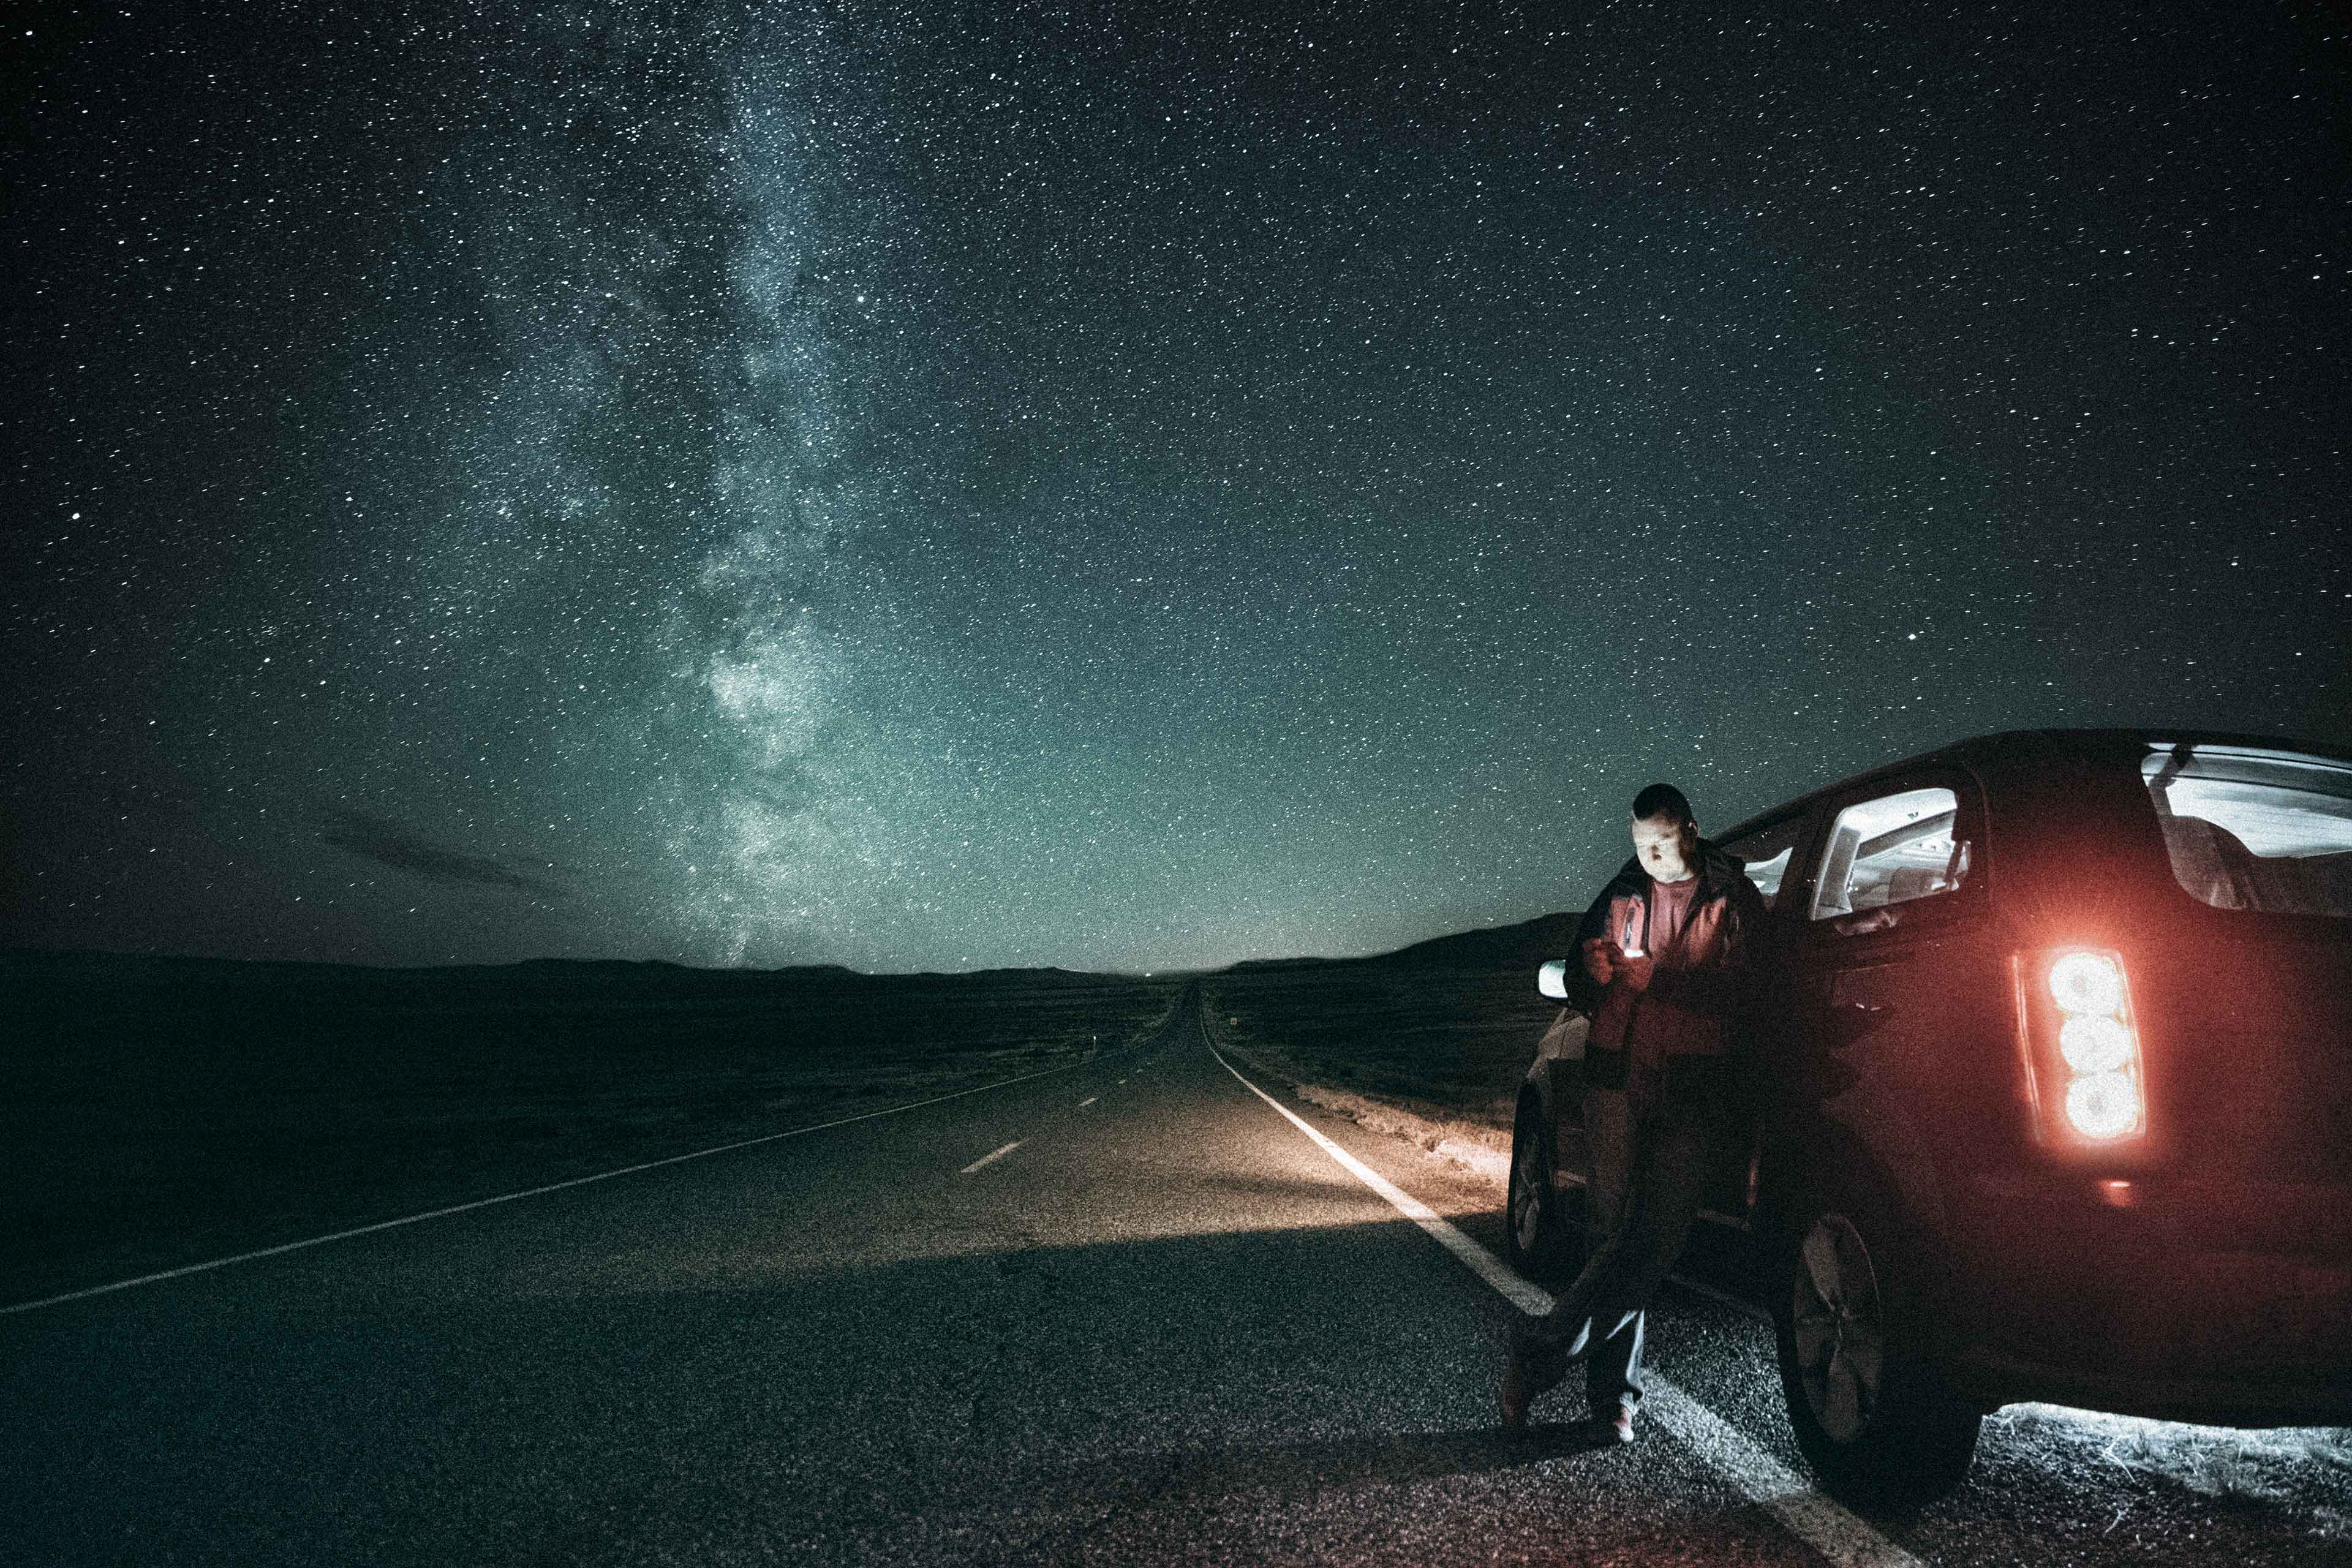 EY - Man and car against Milky Way